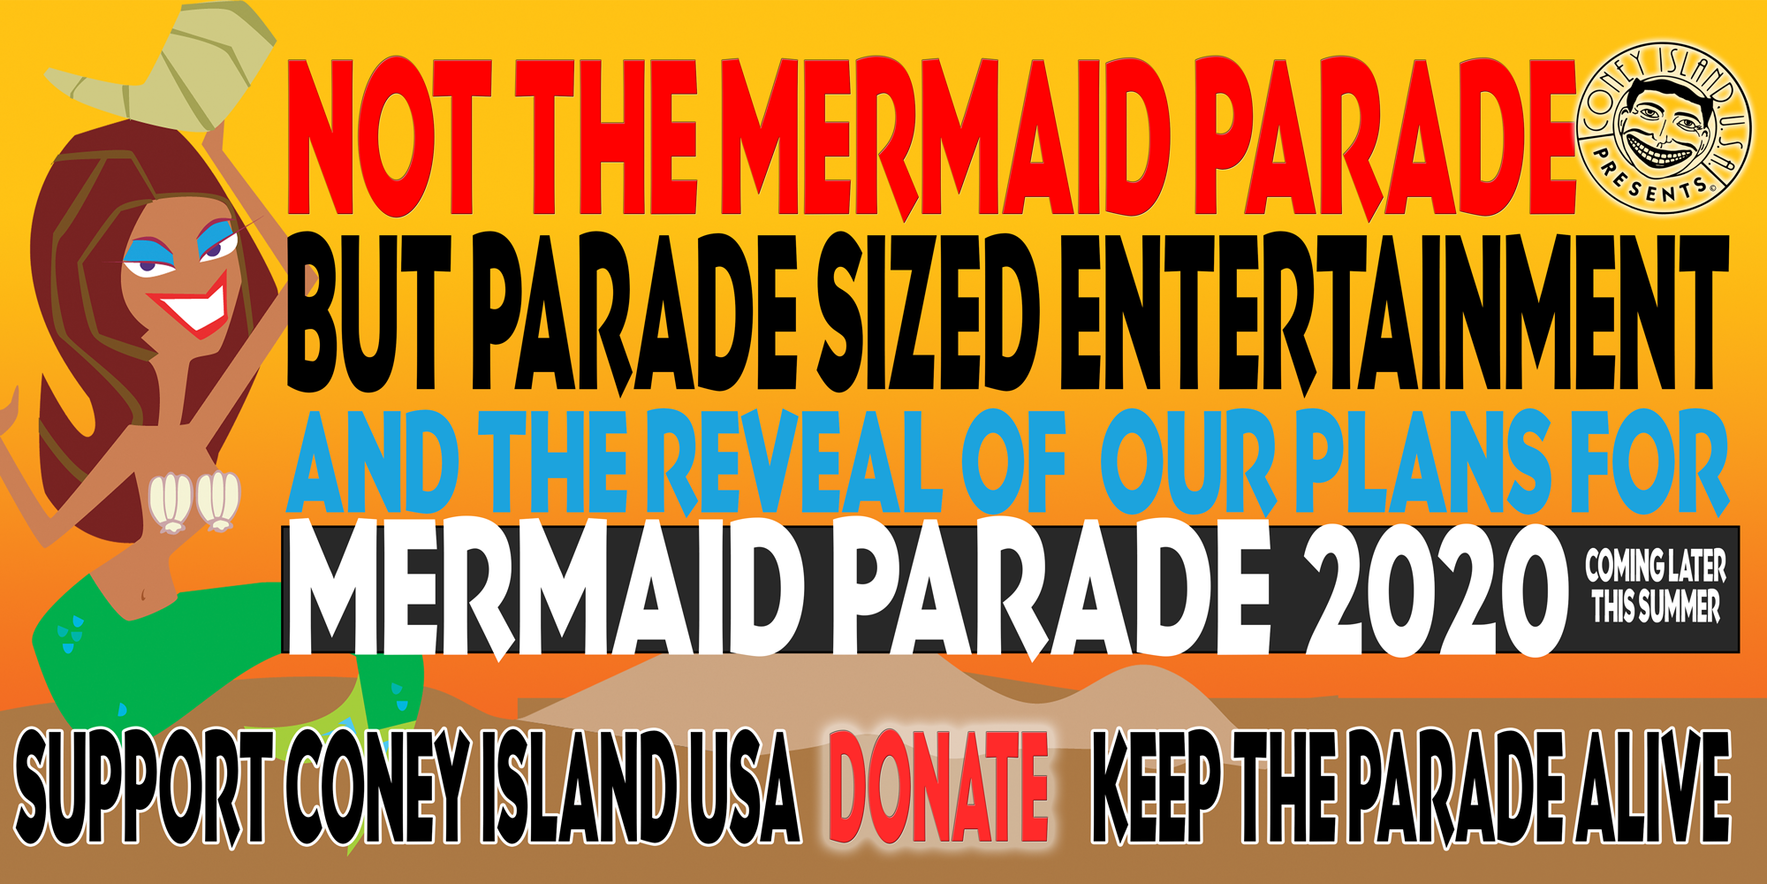 Support the Mermaid Parade image